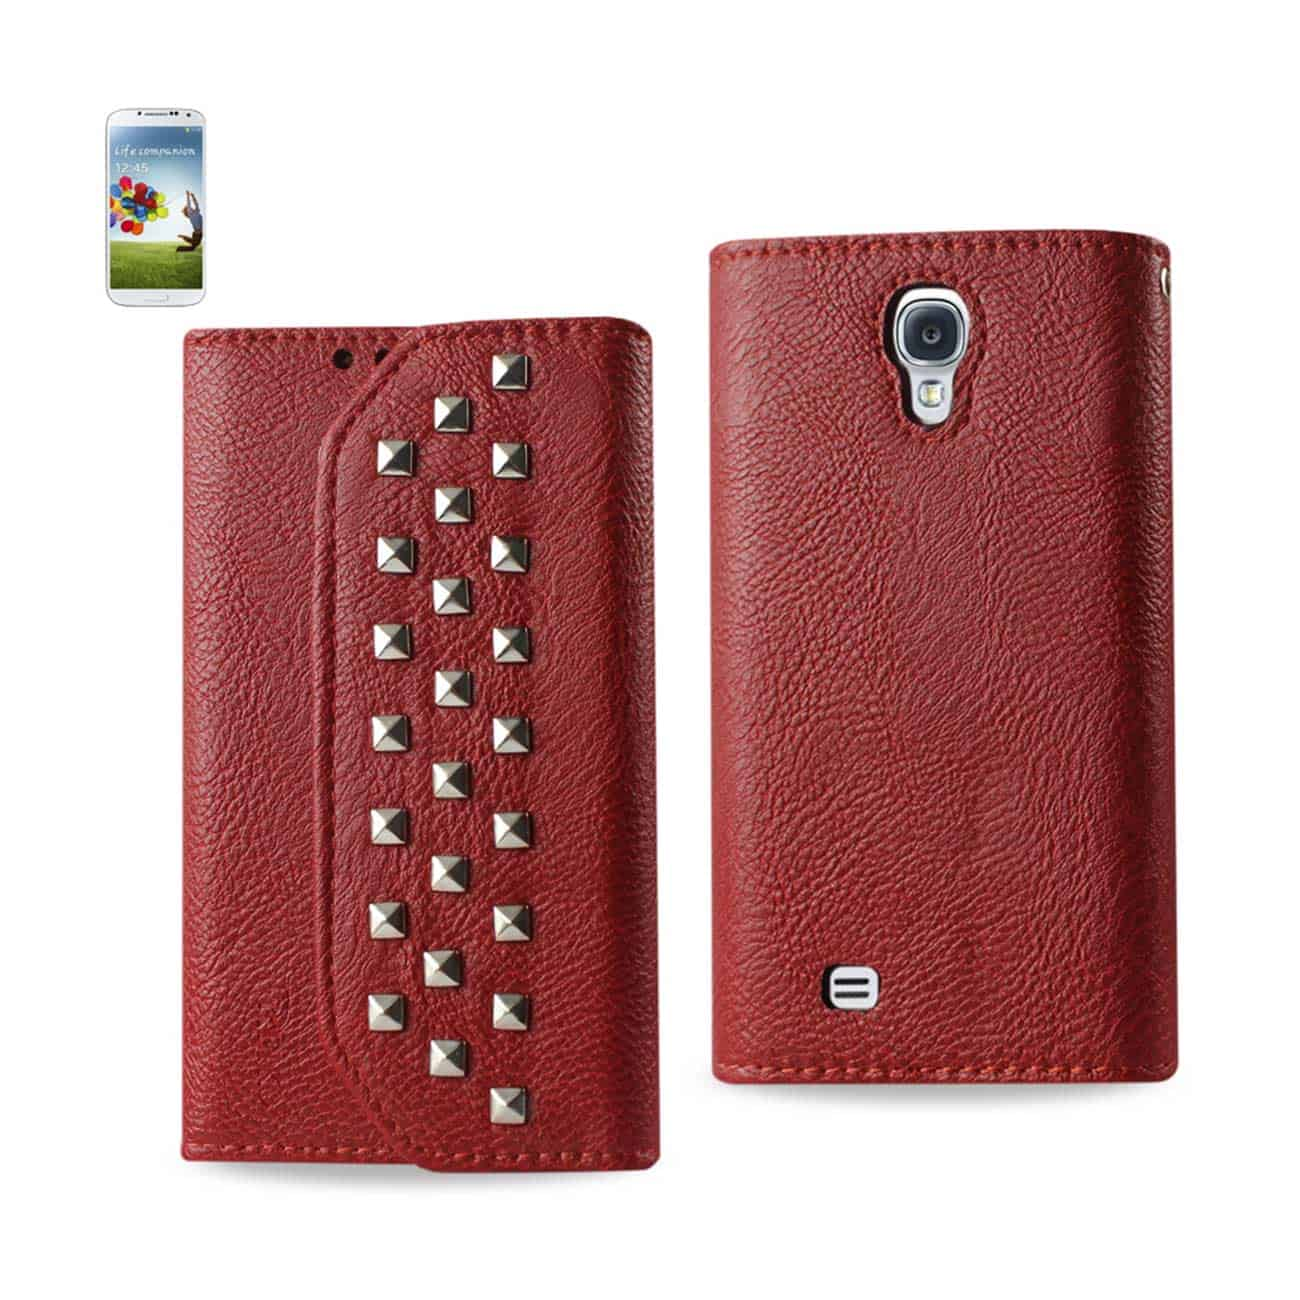 SAMSUNG GALAXY S4 STUDS WALLET CASE IN DARK RED